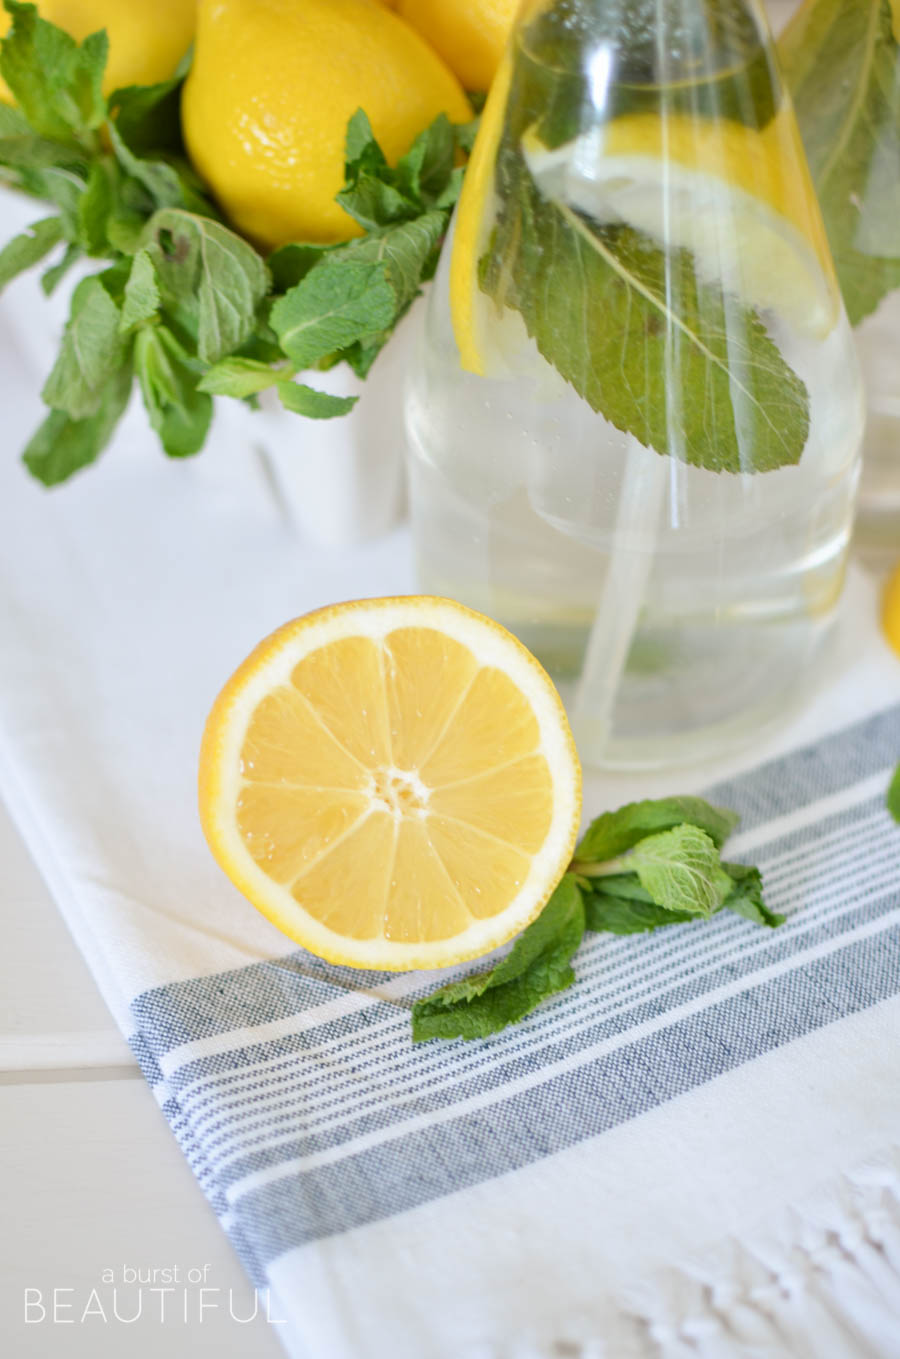 Mint and lemon infused homemade all purpose cleaner is an easy and inexpensive way to clean your home naturally | A Burst of Beautiful